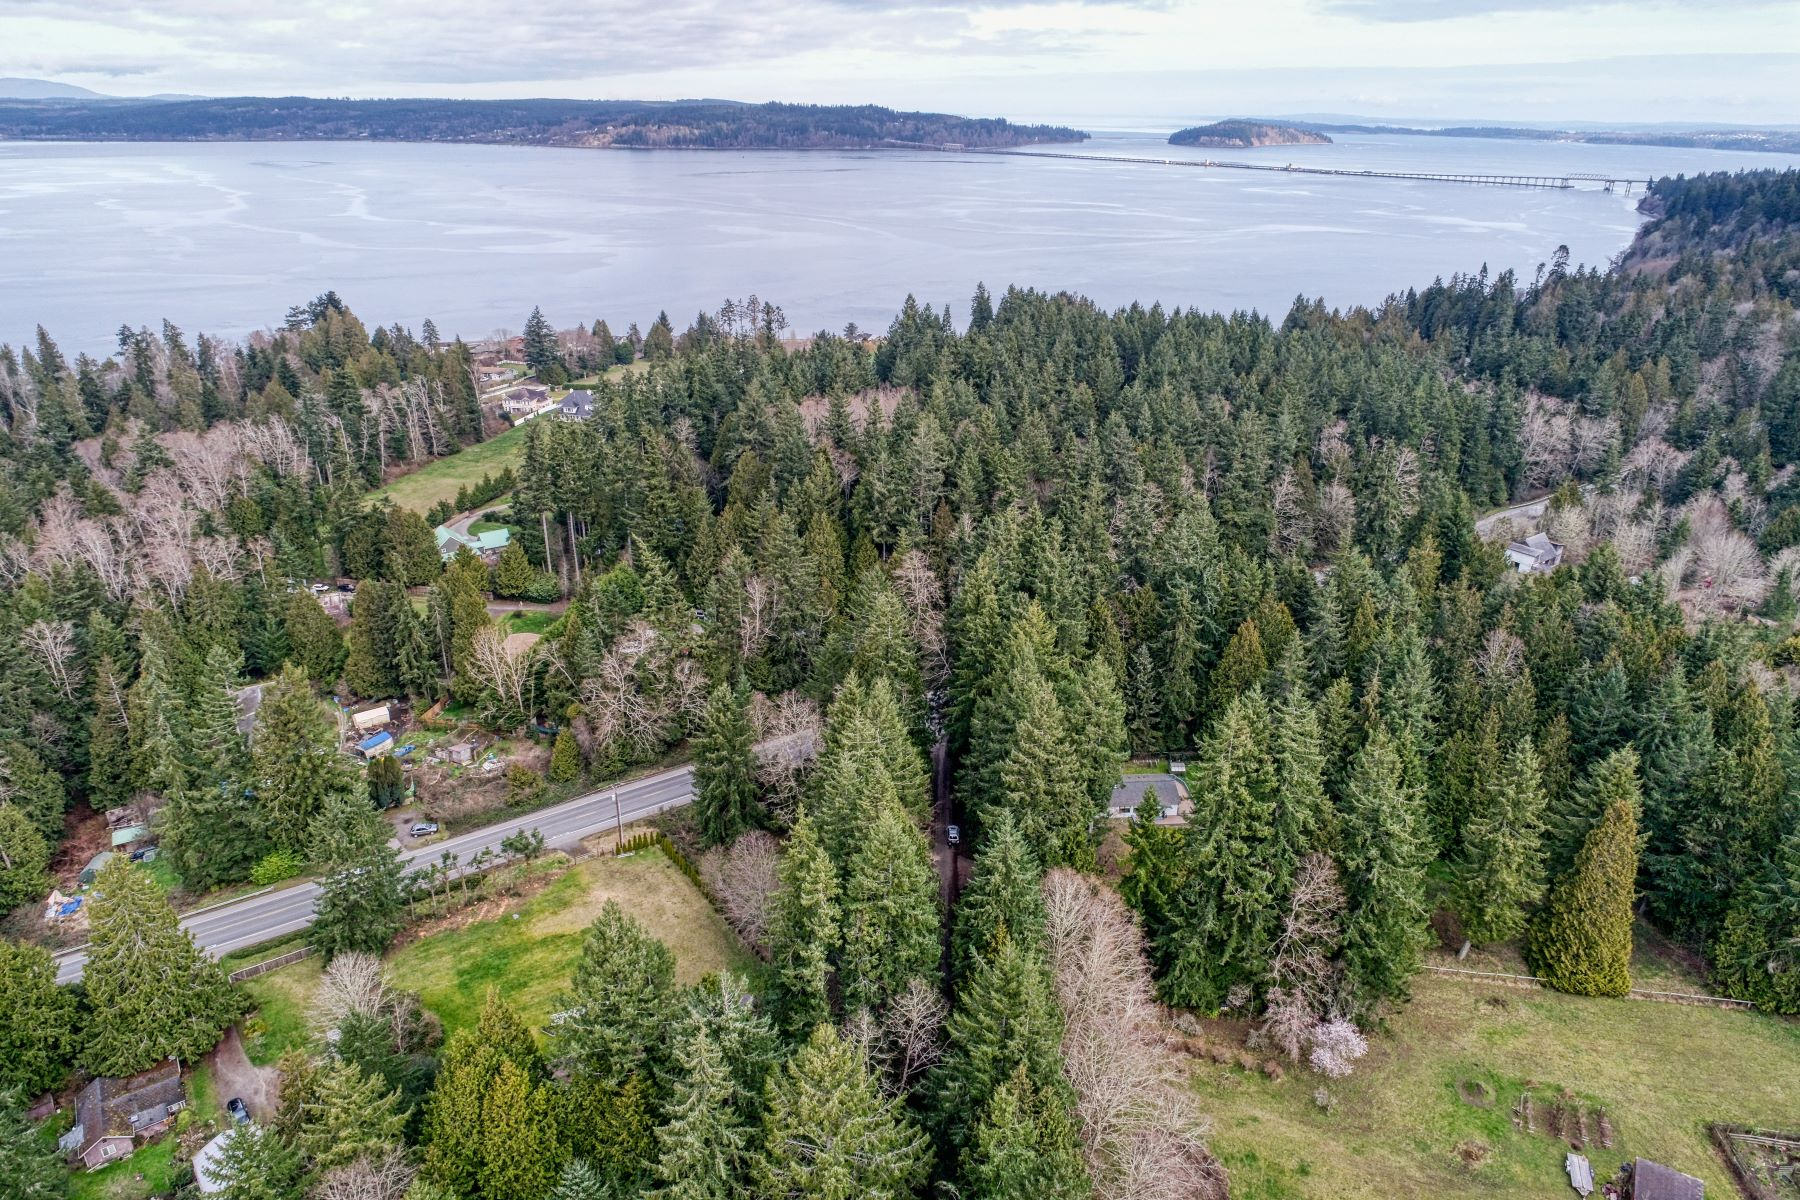 Land for Sale at Corner of Hwy 3 and Scenic Drive NE, Poulsbo, WA Lot Scenic Drive NE, Poulsbo, Washington 98370 United States